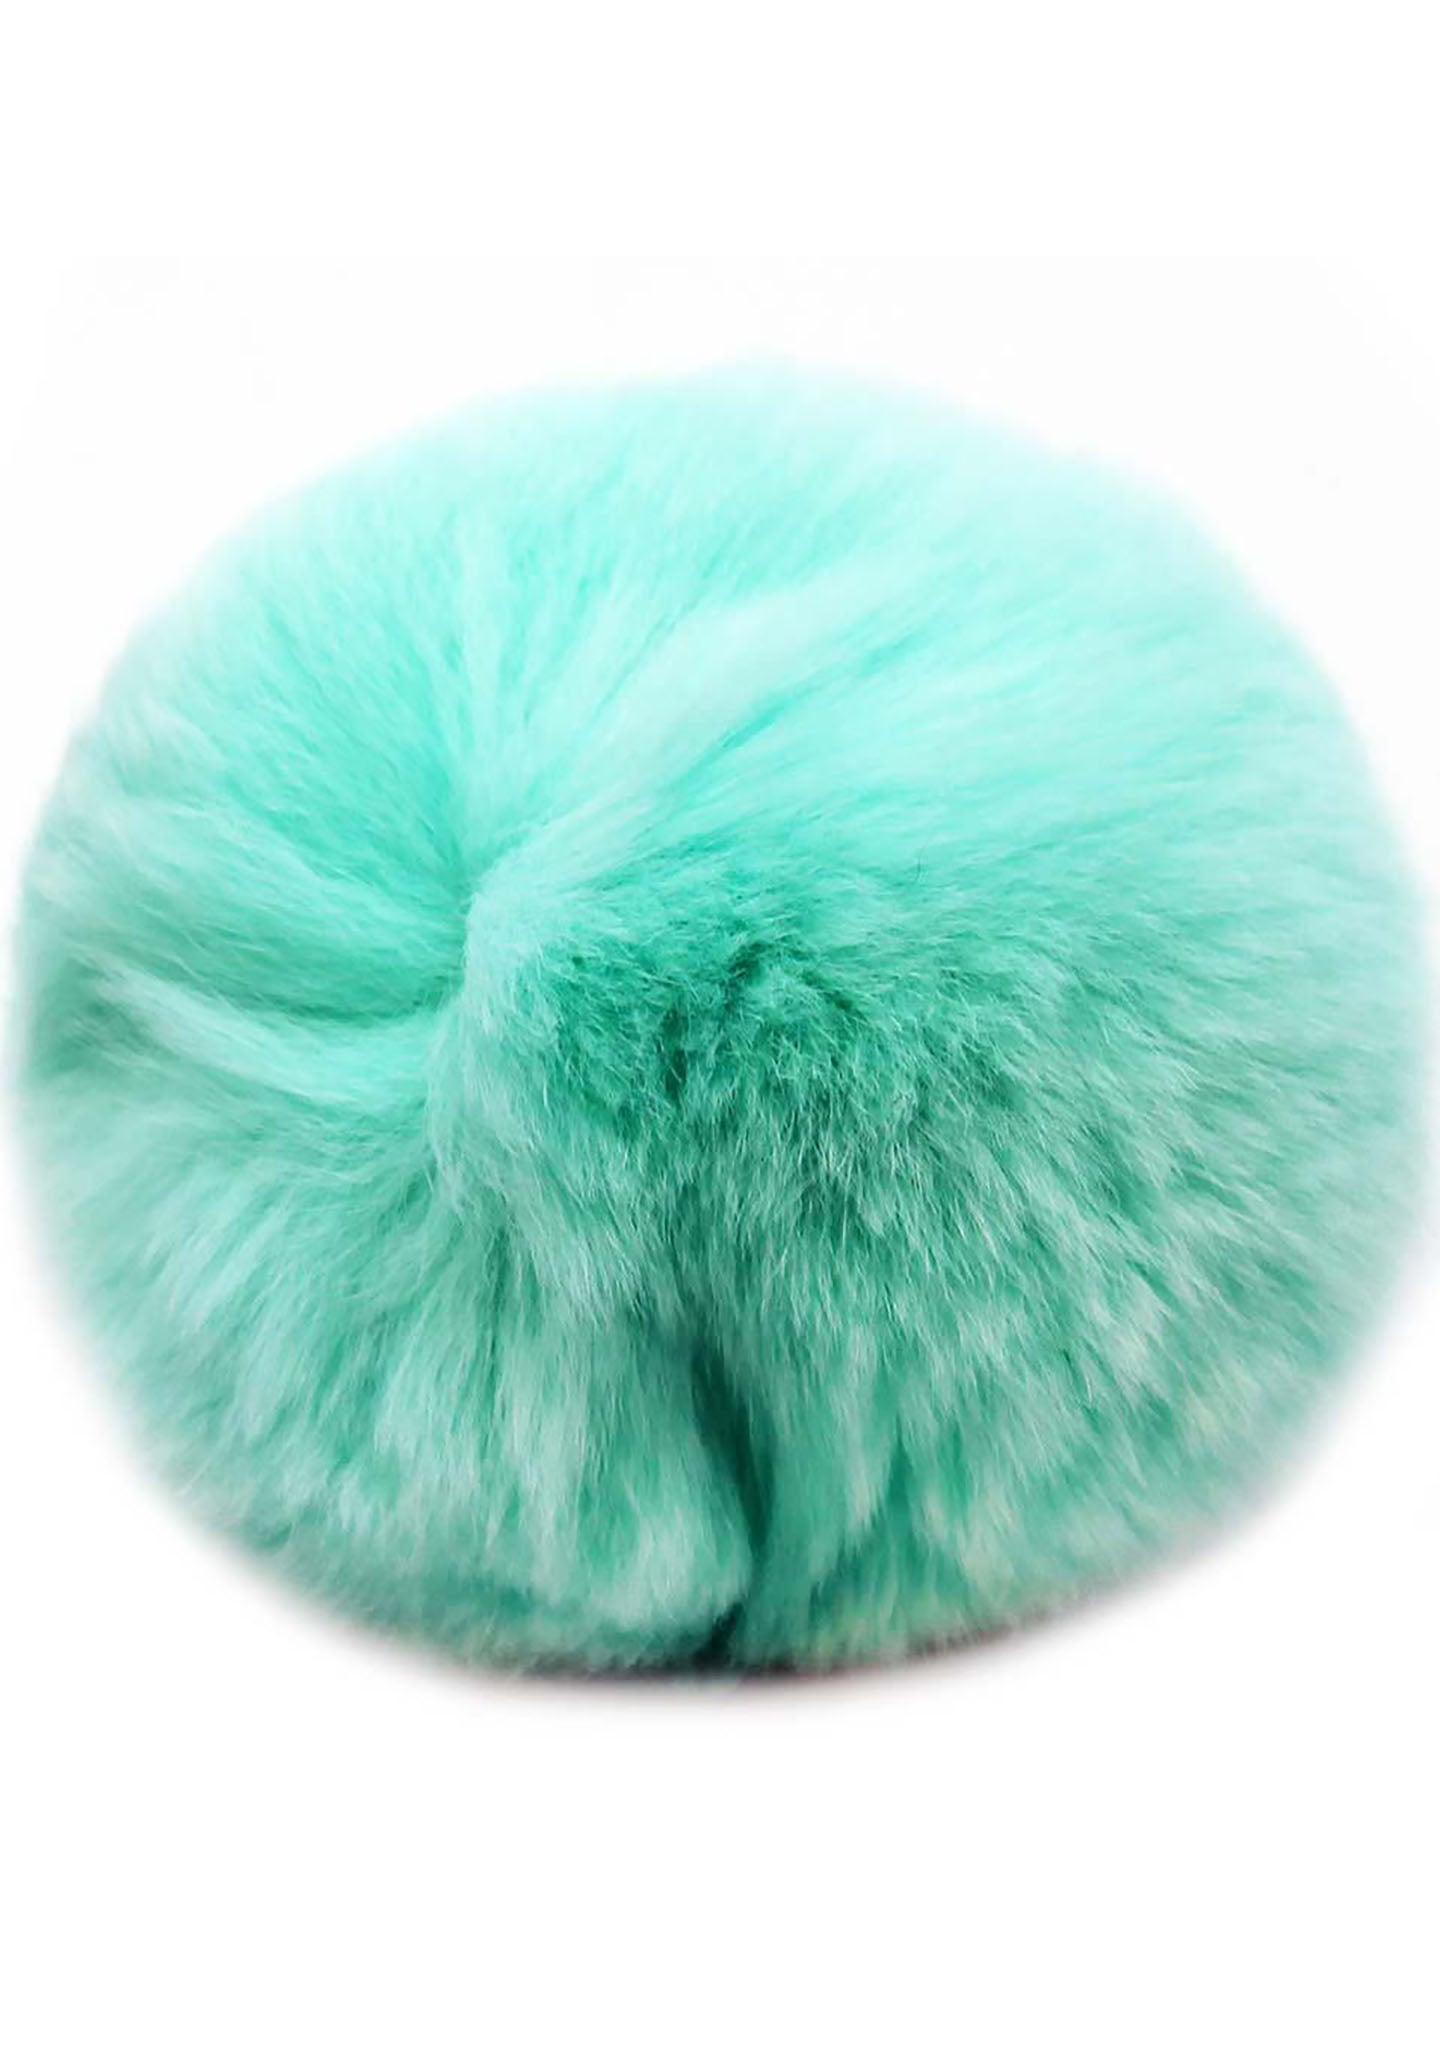 7 LUXE Single Puff Ball Pin Clip in Aqua